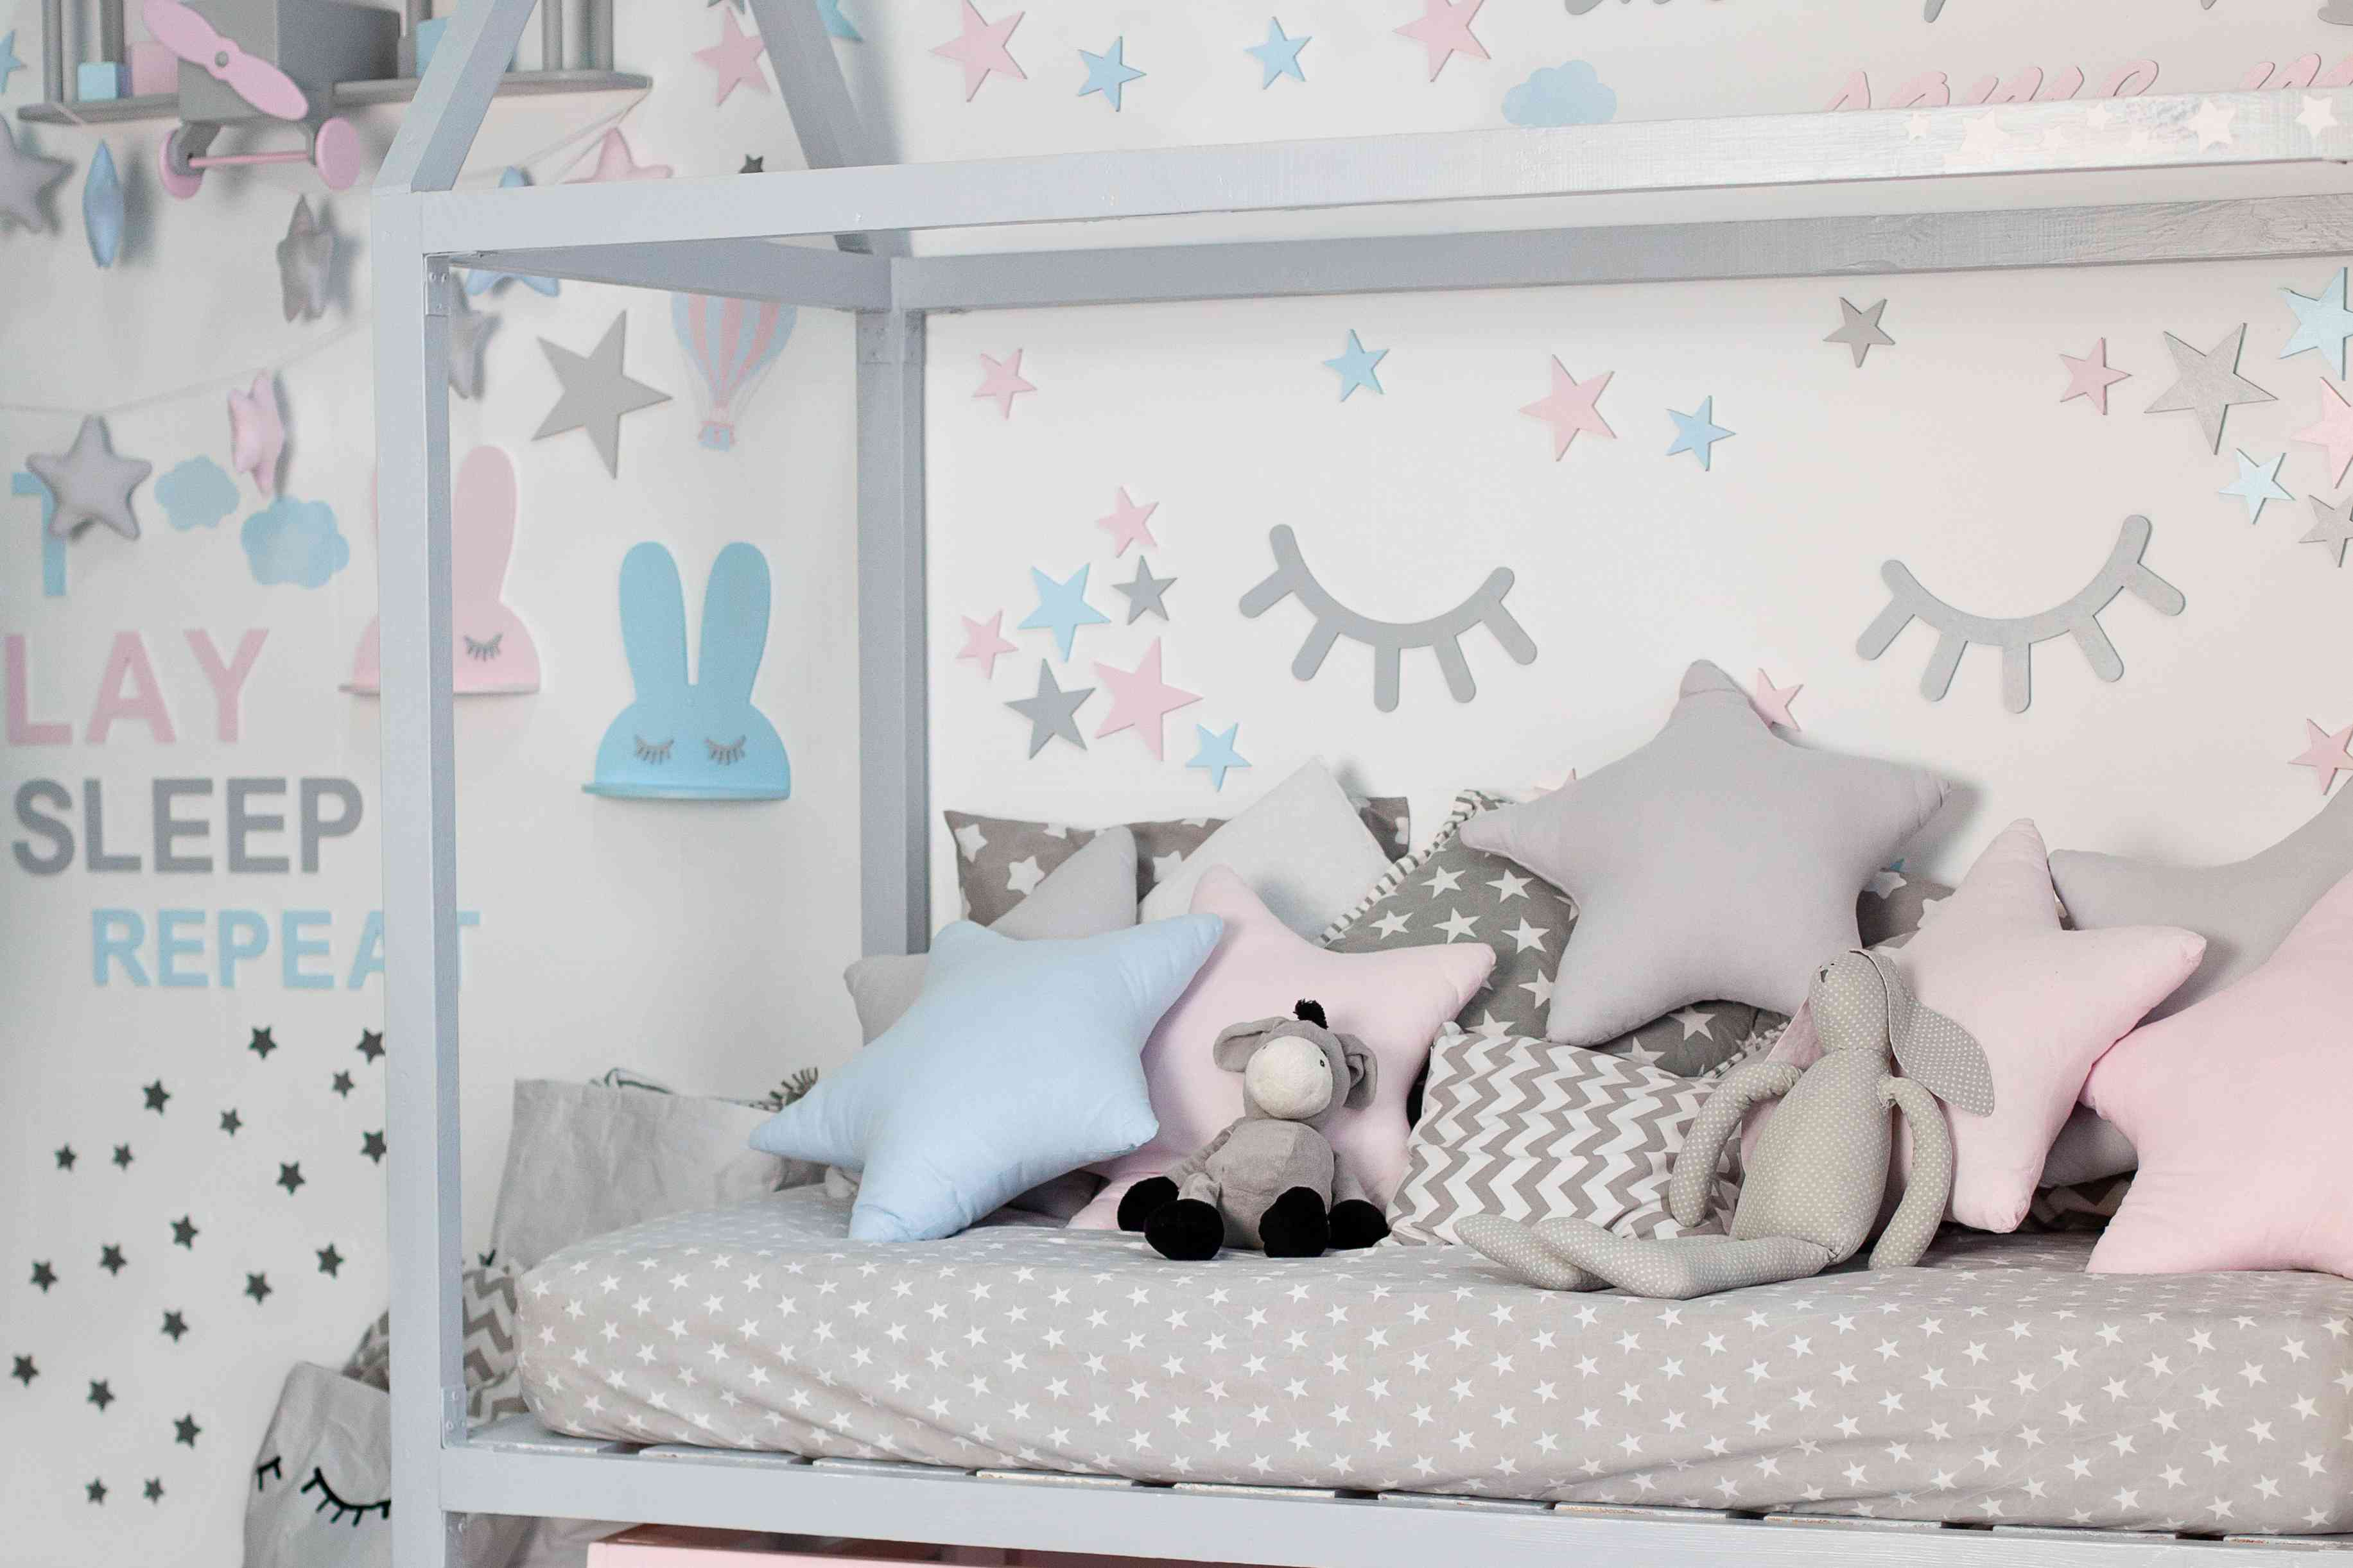 Kids bed in white sunny bedroom. Children room and interior design. Bed for baby or toddler boy at home. Bedding and textile for children nursery. Nap and sleep time. Children bedroom with pillows.